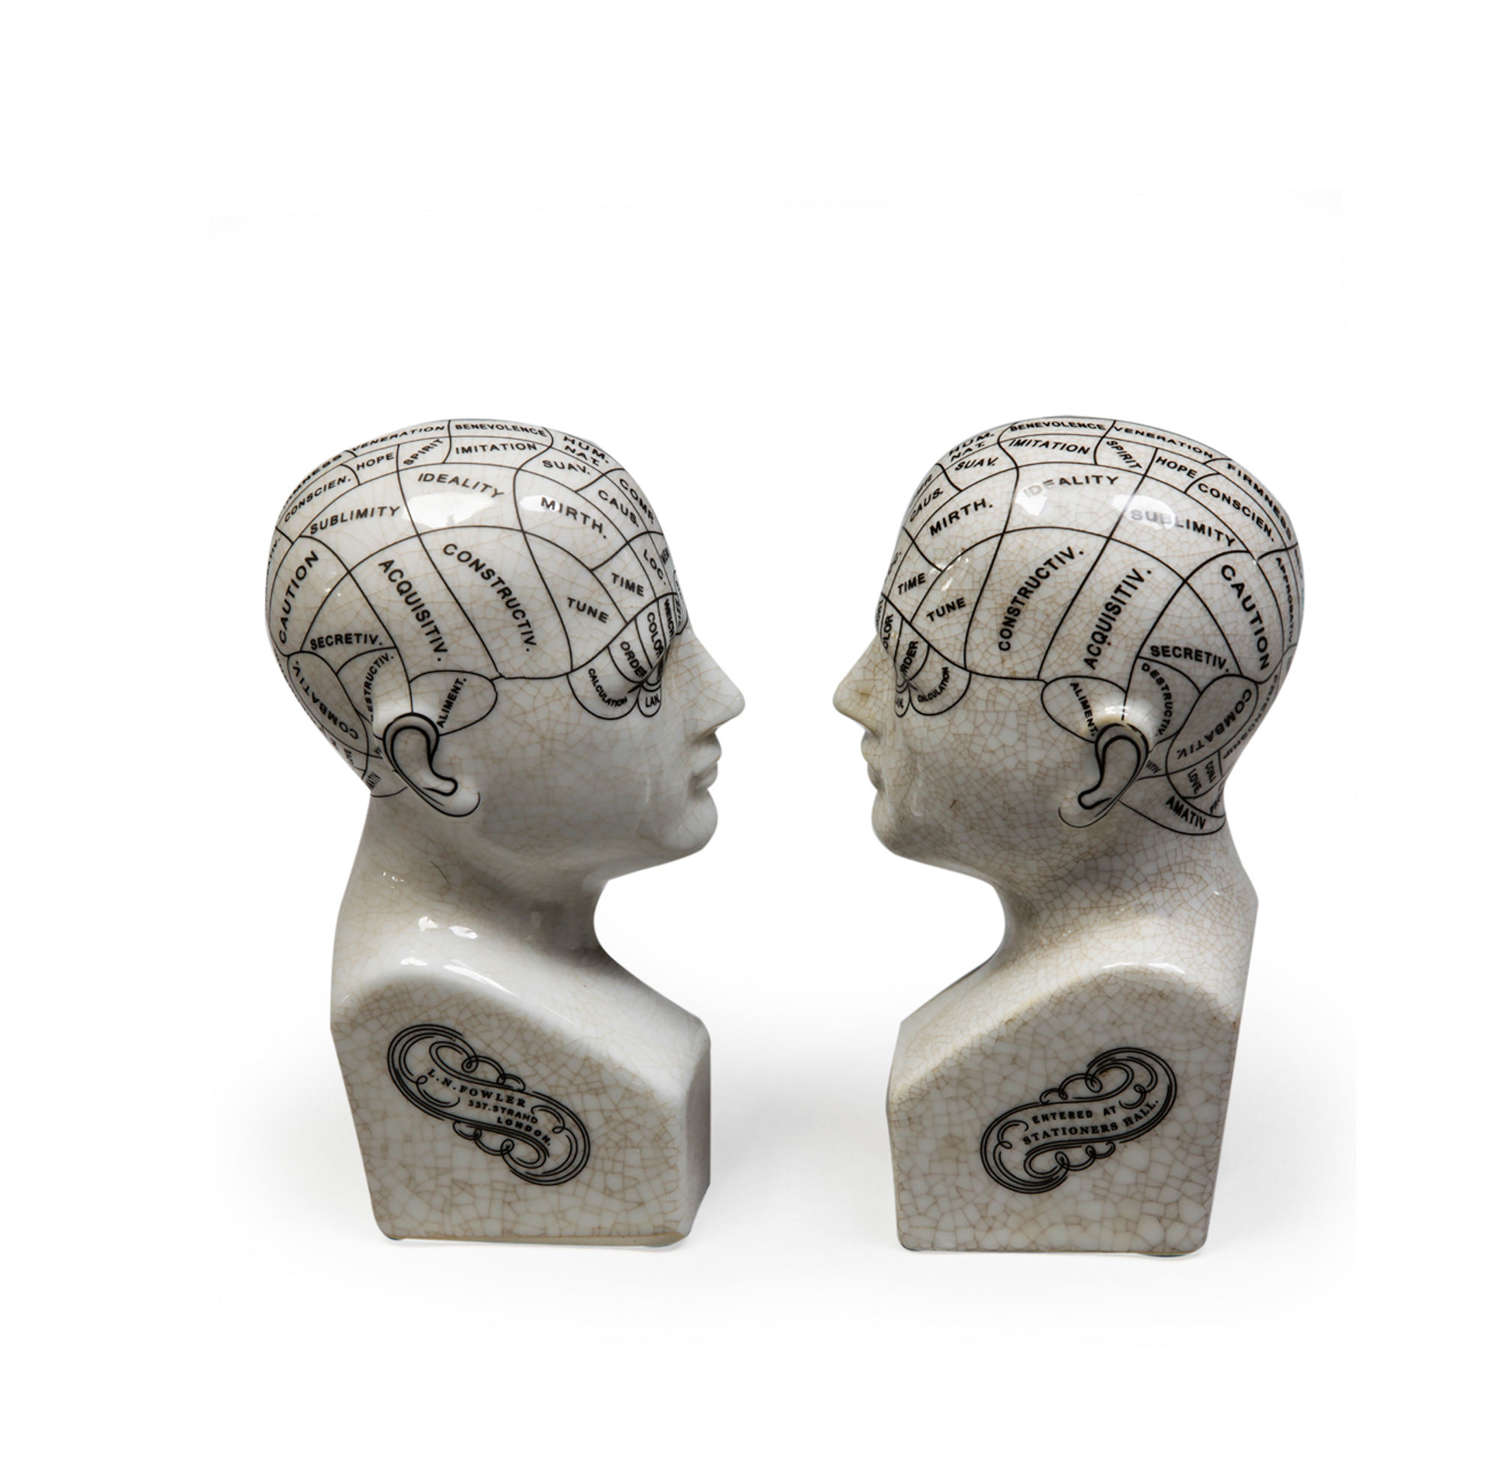 Anitque effect Phrenology Head bookends